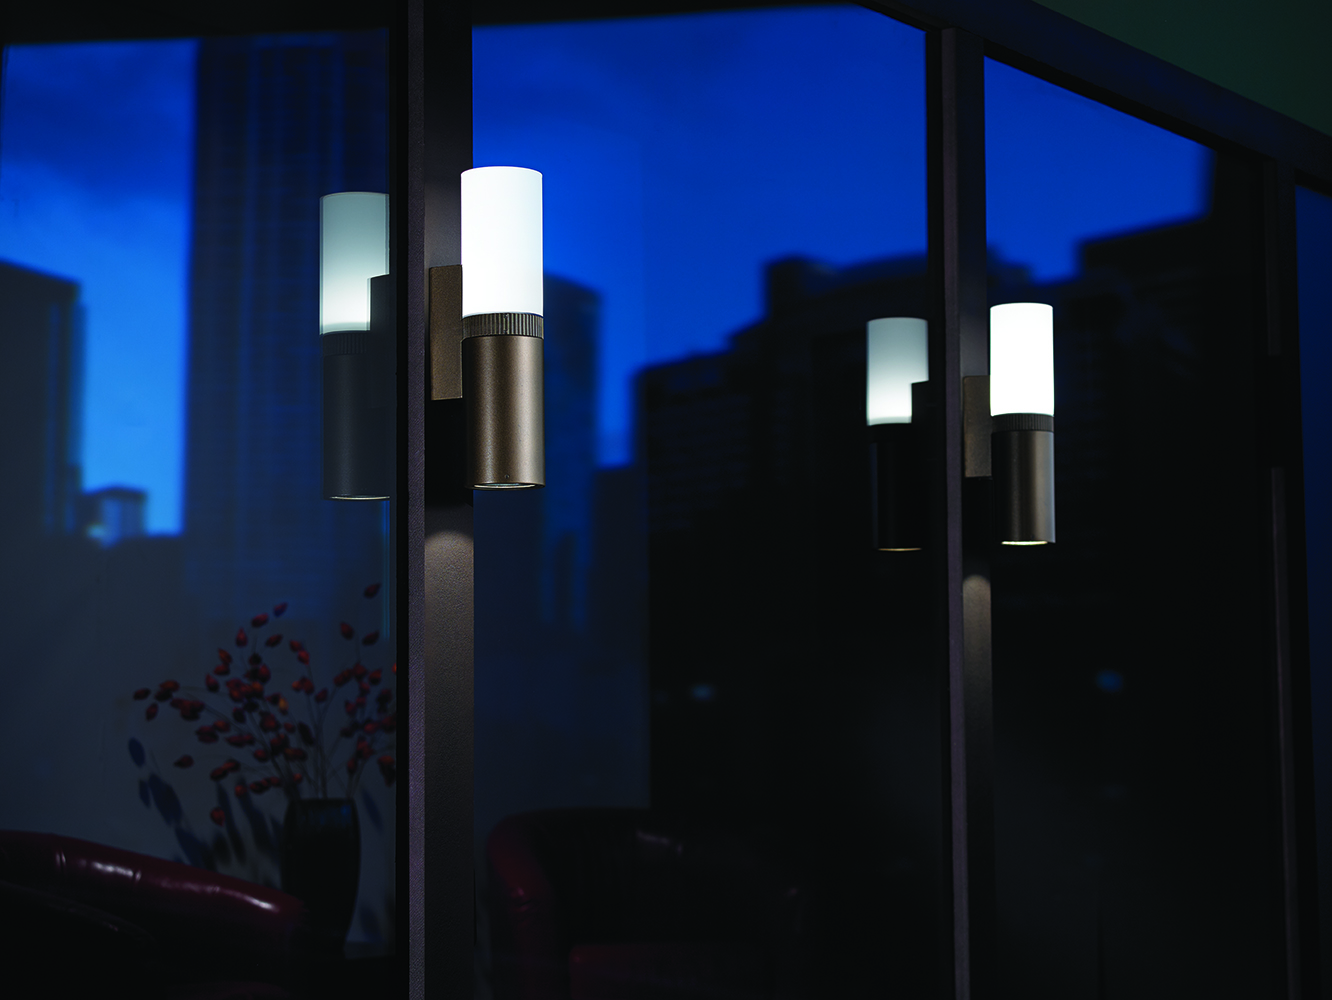 Scope exterior lighting fixtures illuminate large windows at night, reflecting a city skyline.